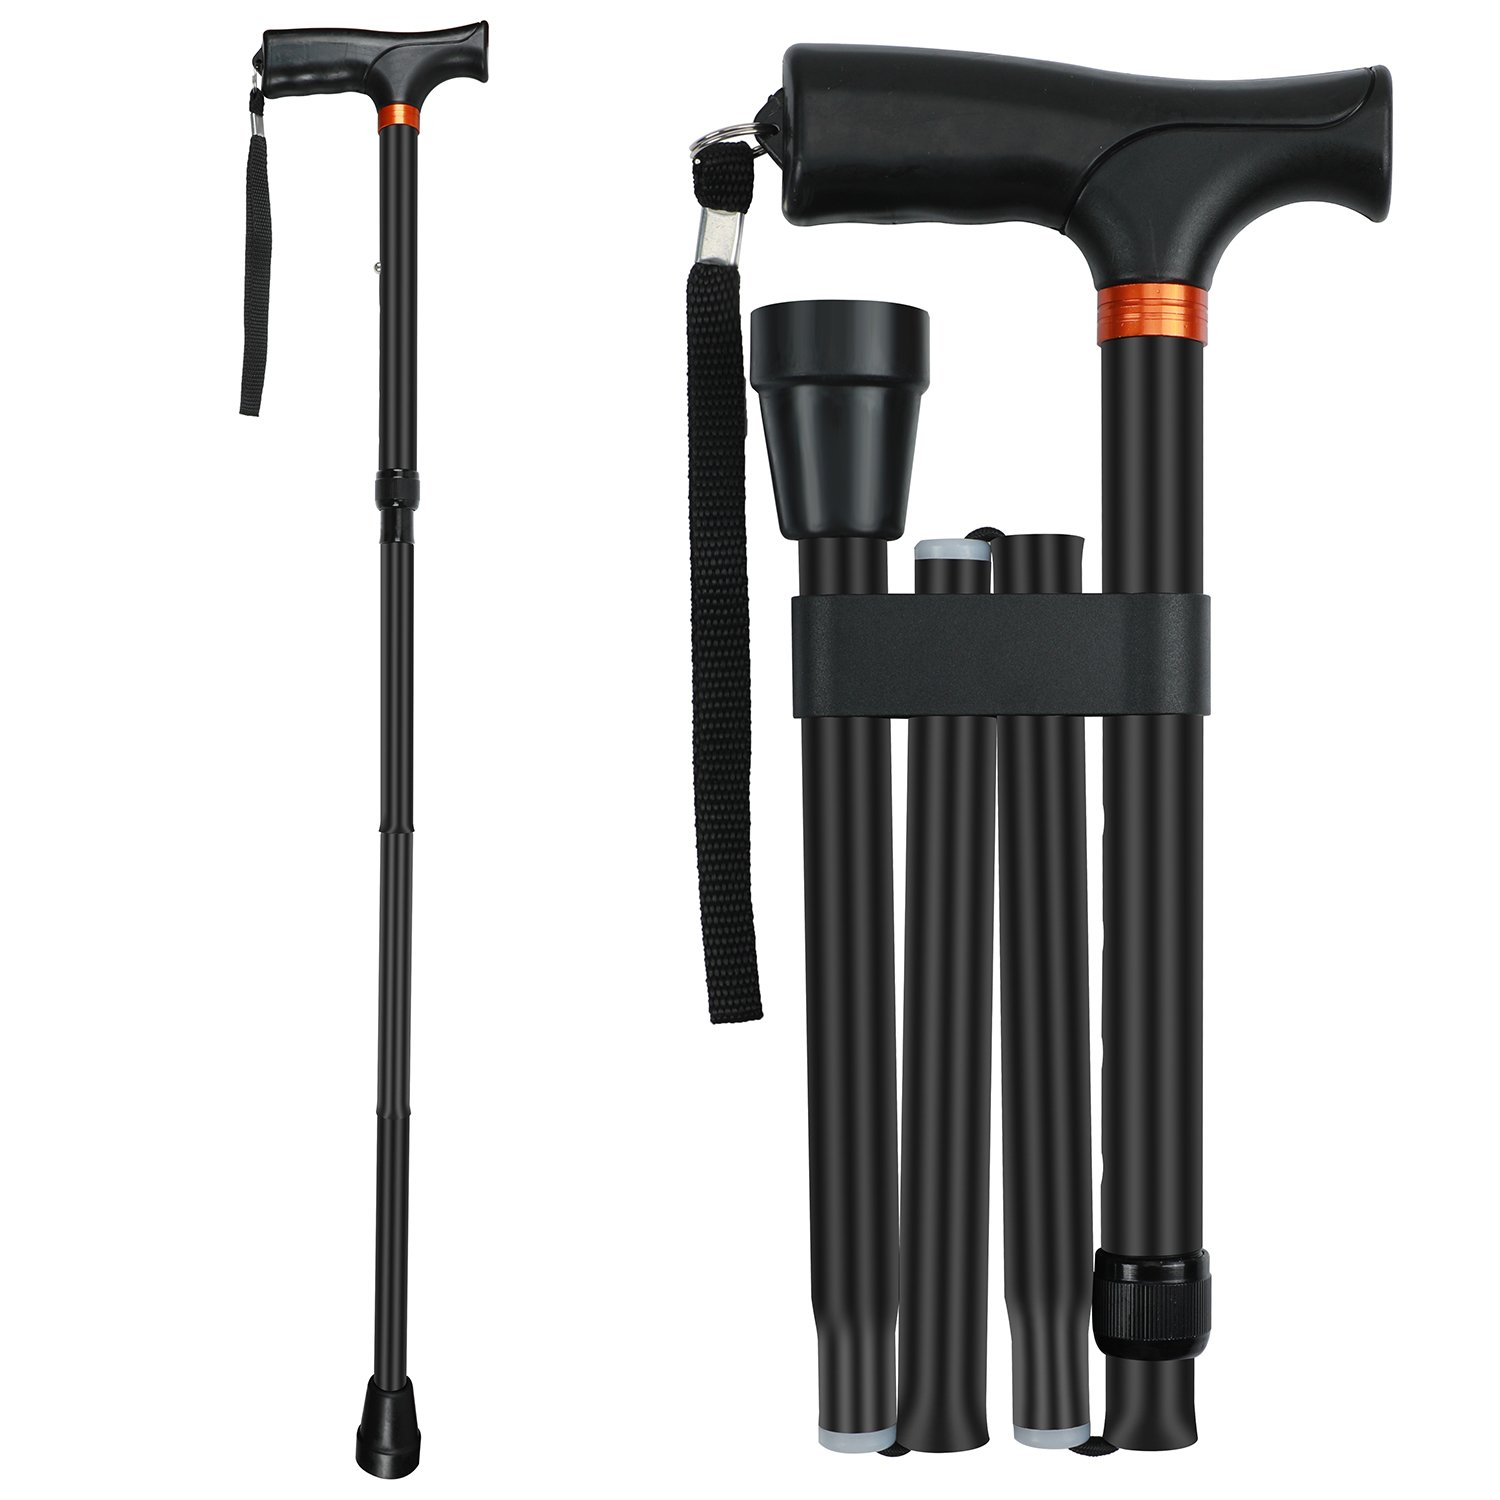 Folding Cane by Saymeto, Lightweight Walking Cane for Men & Women & Ladies, Adjustable Walking Stick Mobility Aid, Comfortable Handles, Black (37)